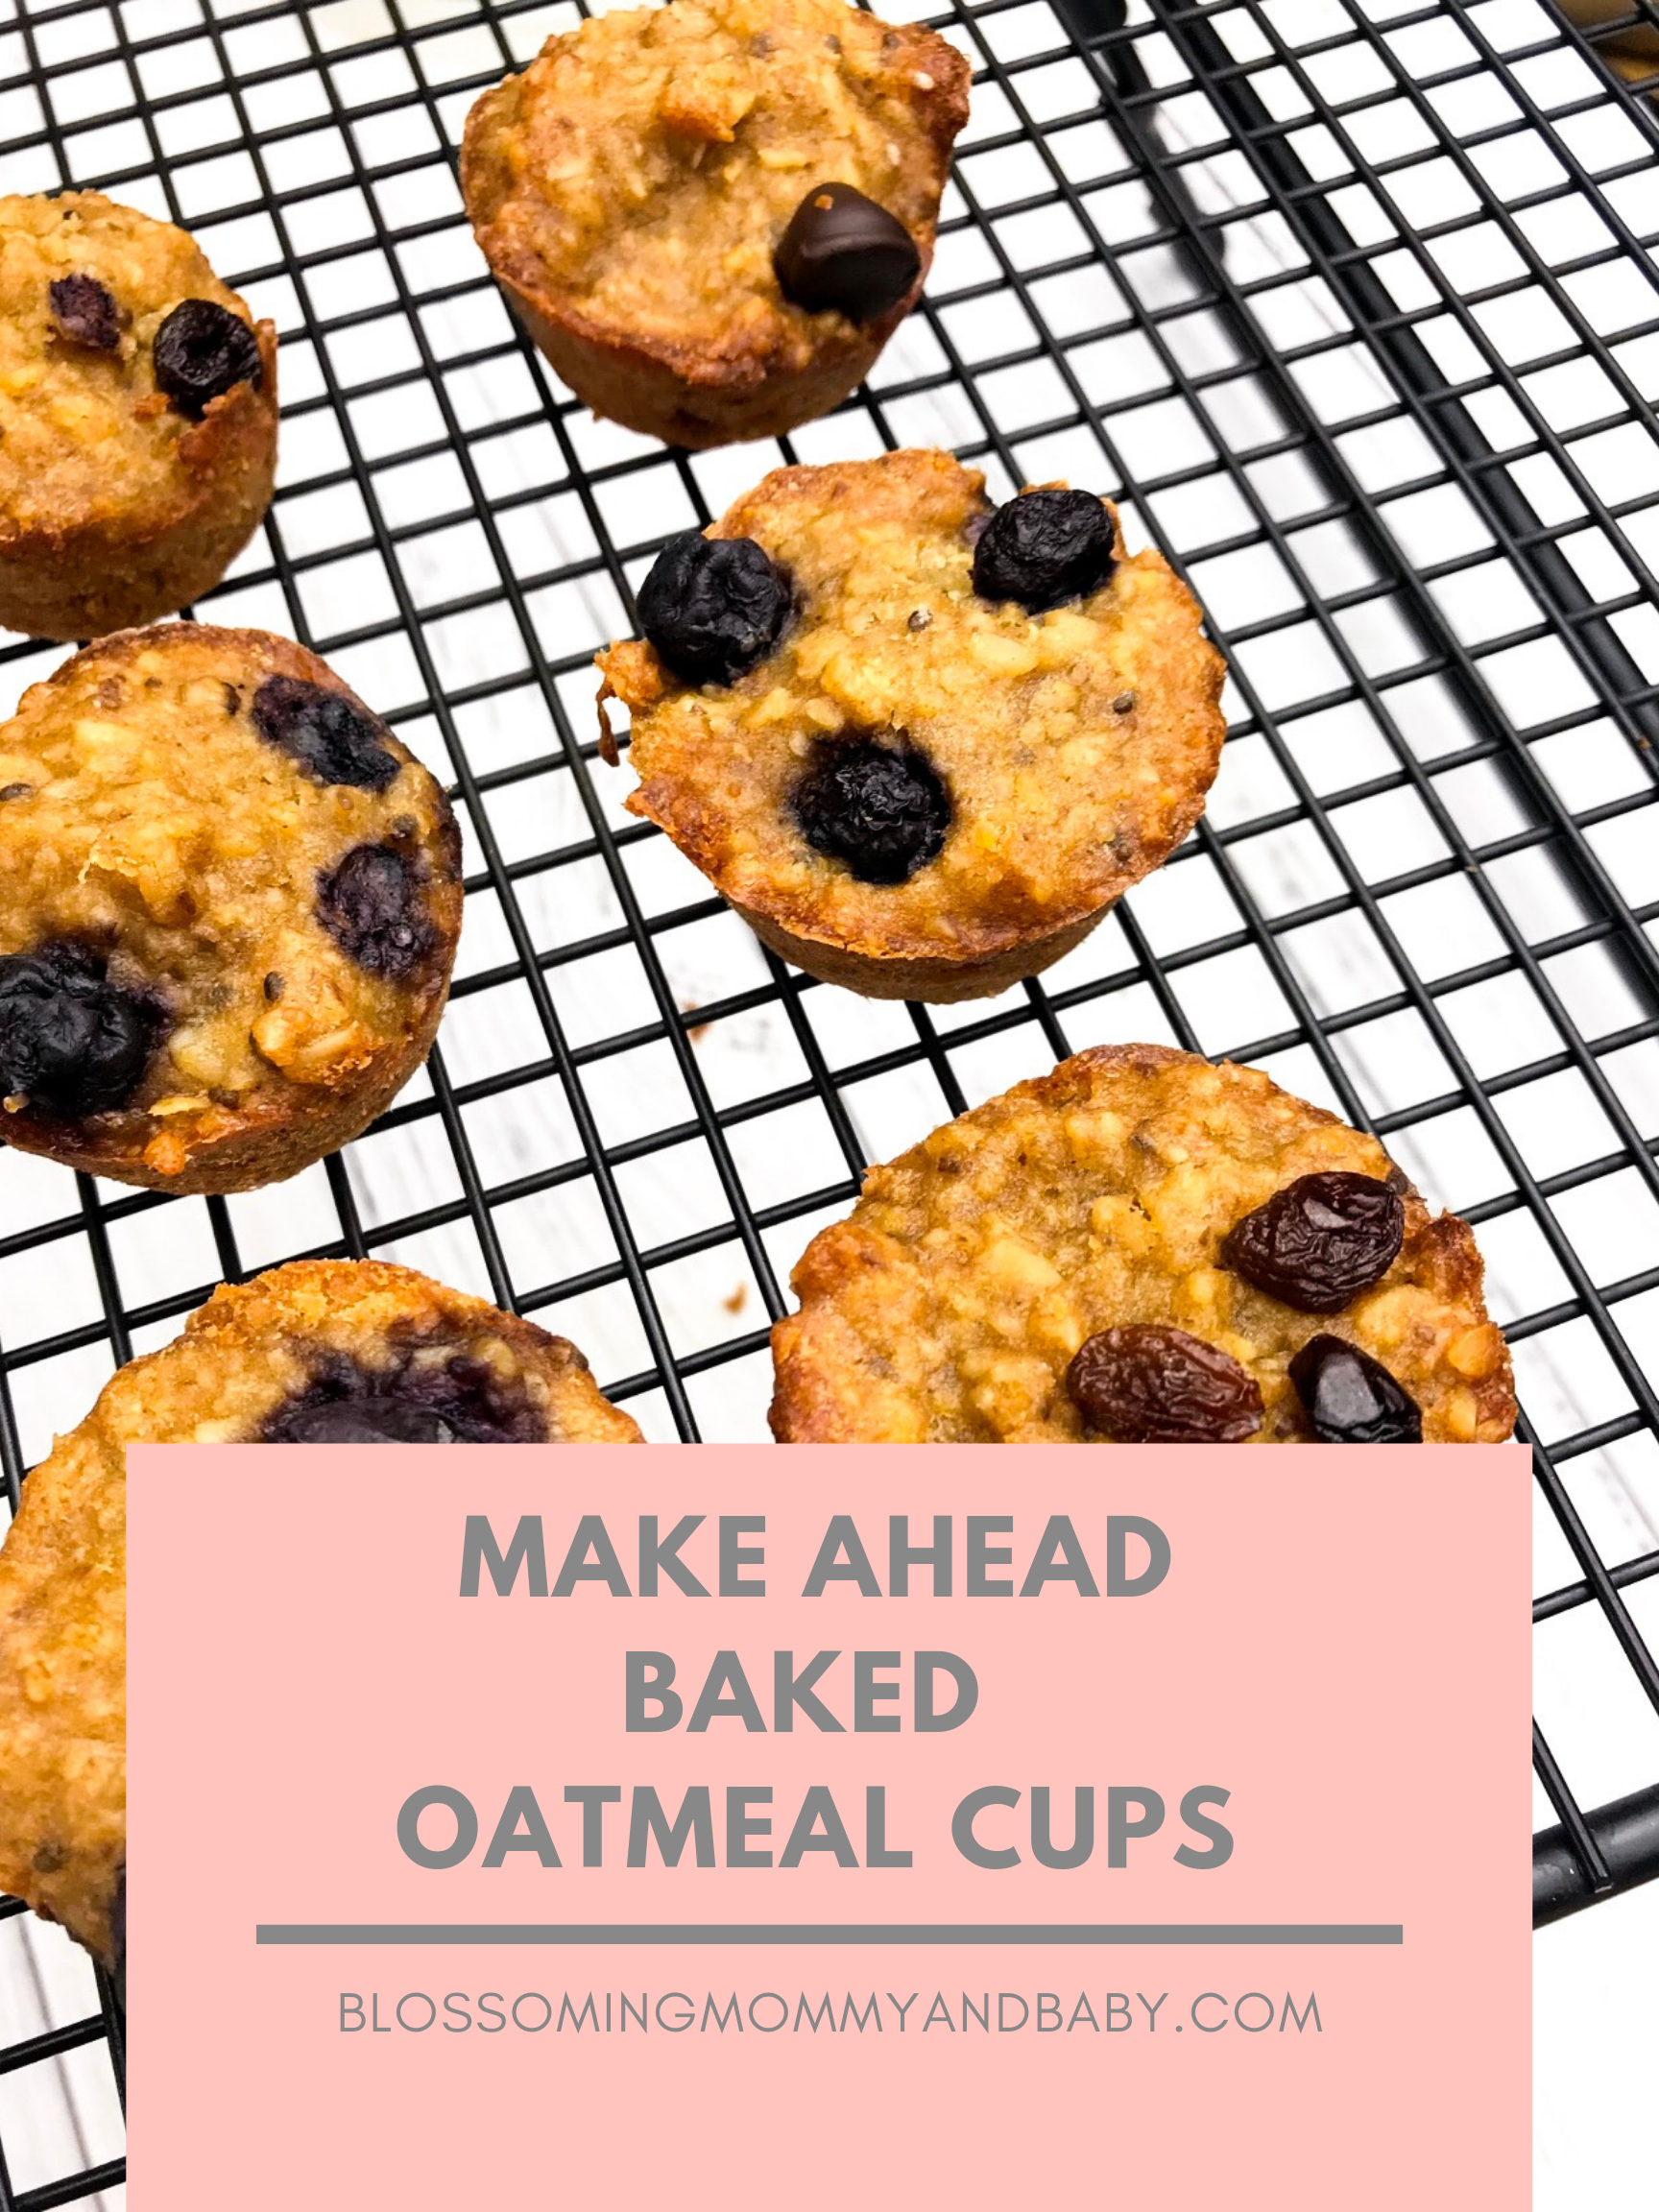 Make Ahead-Baked Oatmeal Cups